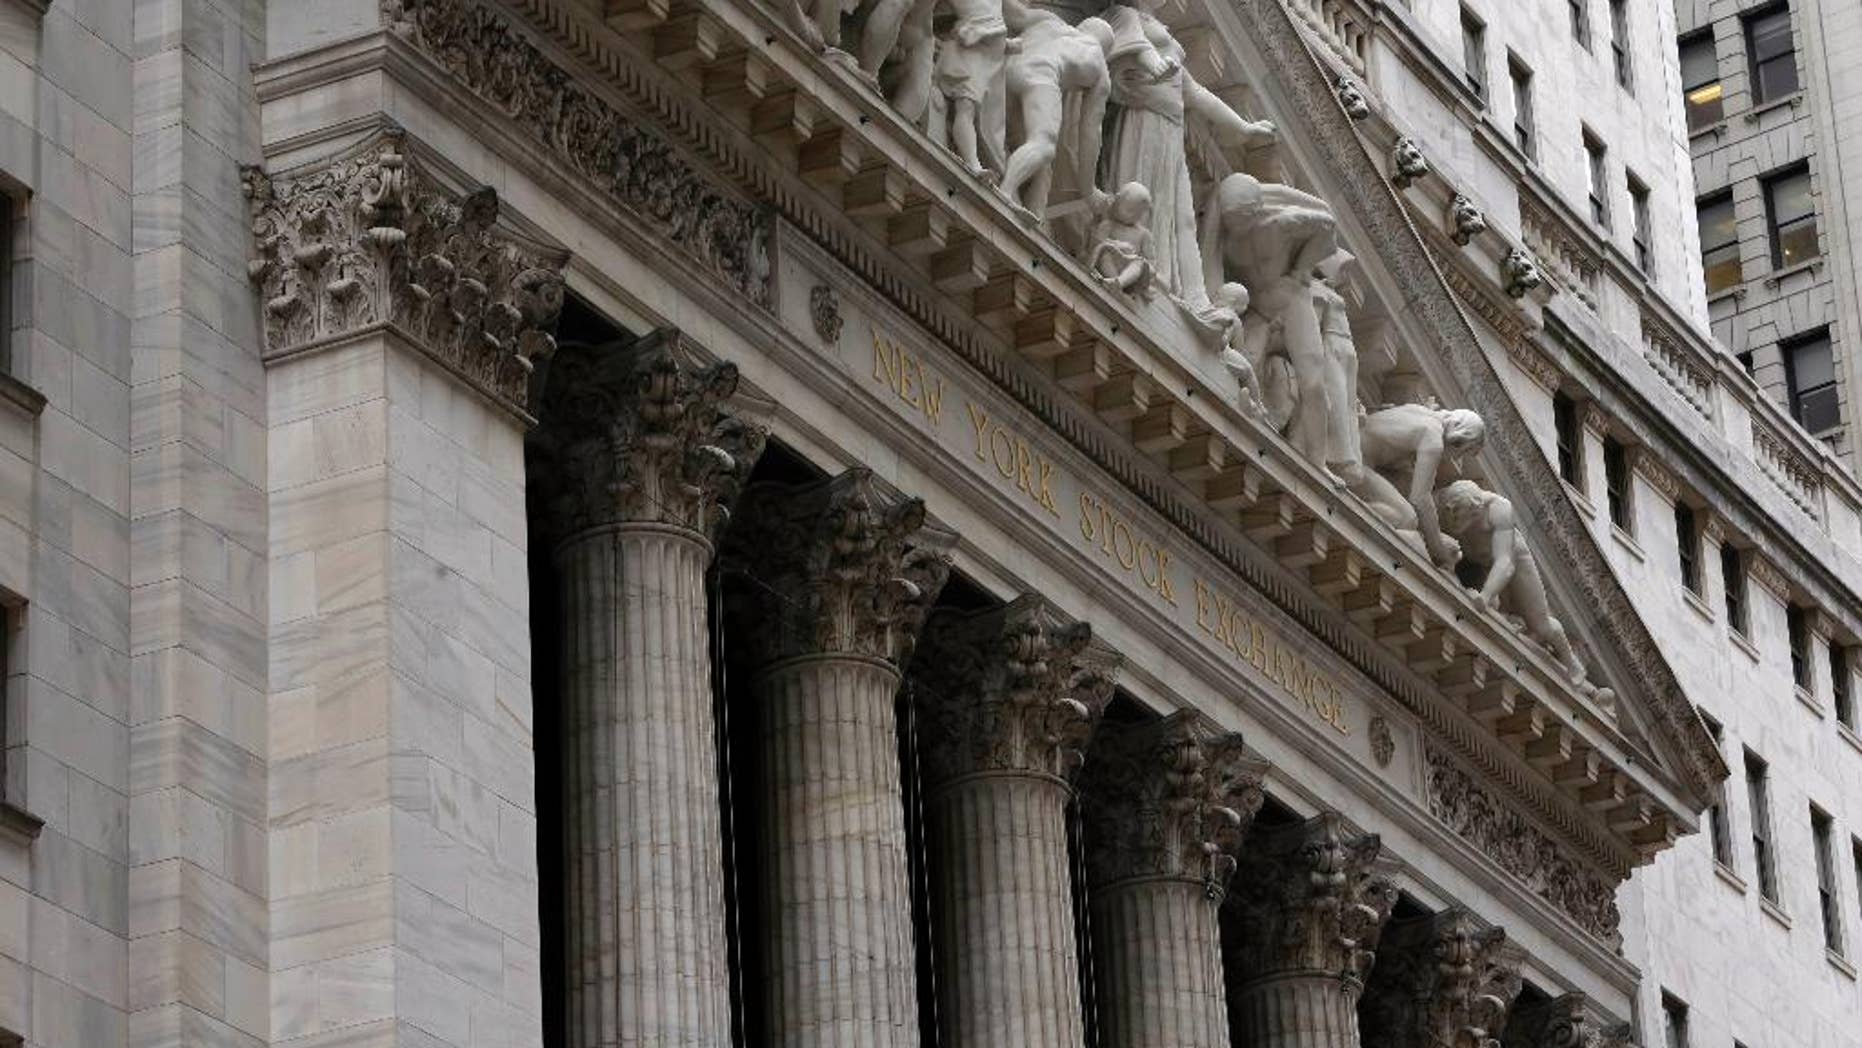 The facade of the New York Stock Exchange, Thursday, Oct. 2, 2014. Global stocks were mostly lower Wednesday Dec. 17, 2014 as oil prices tumbled again while investors waited for a U.S. Federal Reserve statement on monetary policy. (AP Photo/Richard Drew)